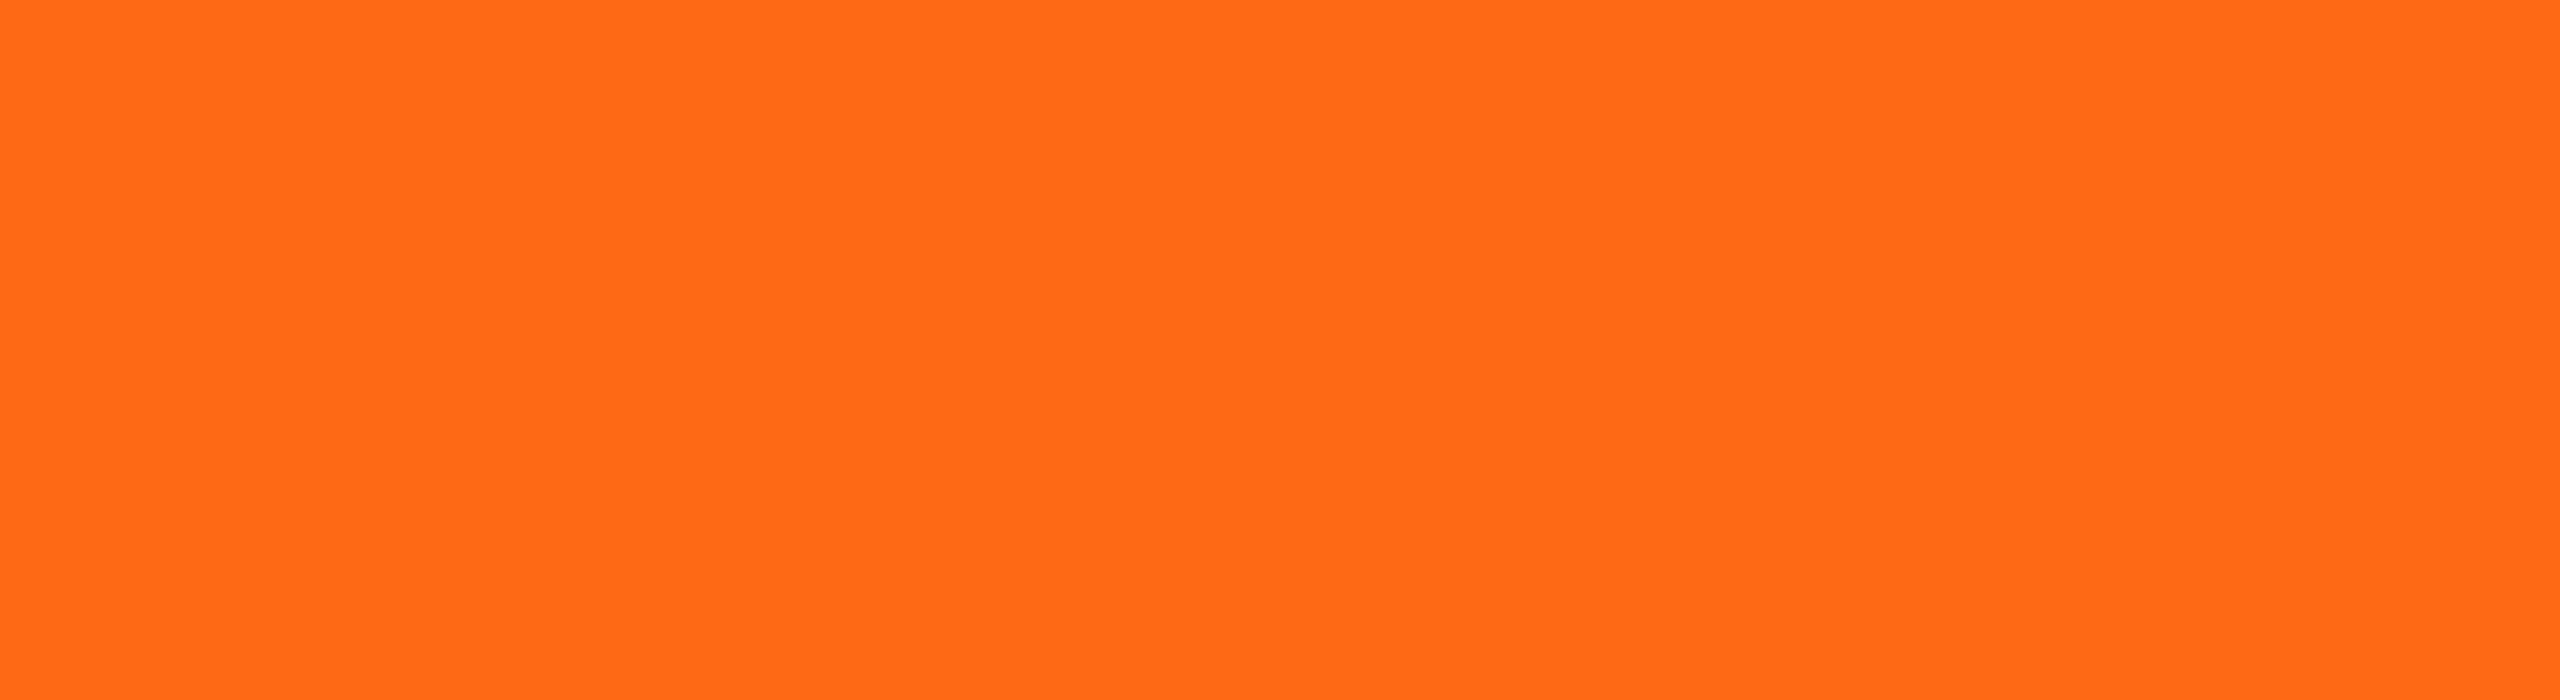 Develey orange Hintergrund